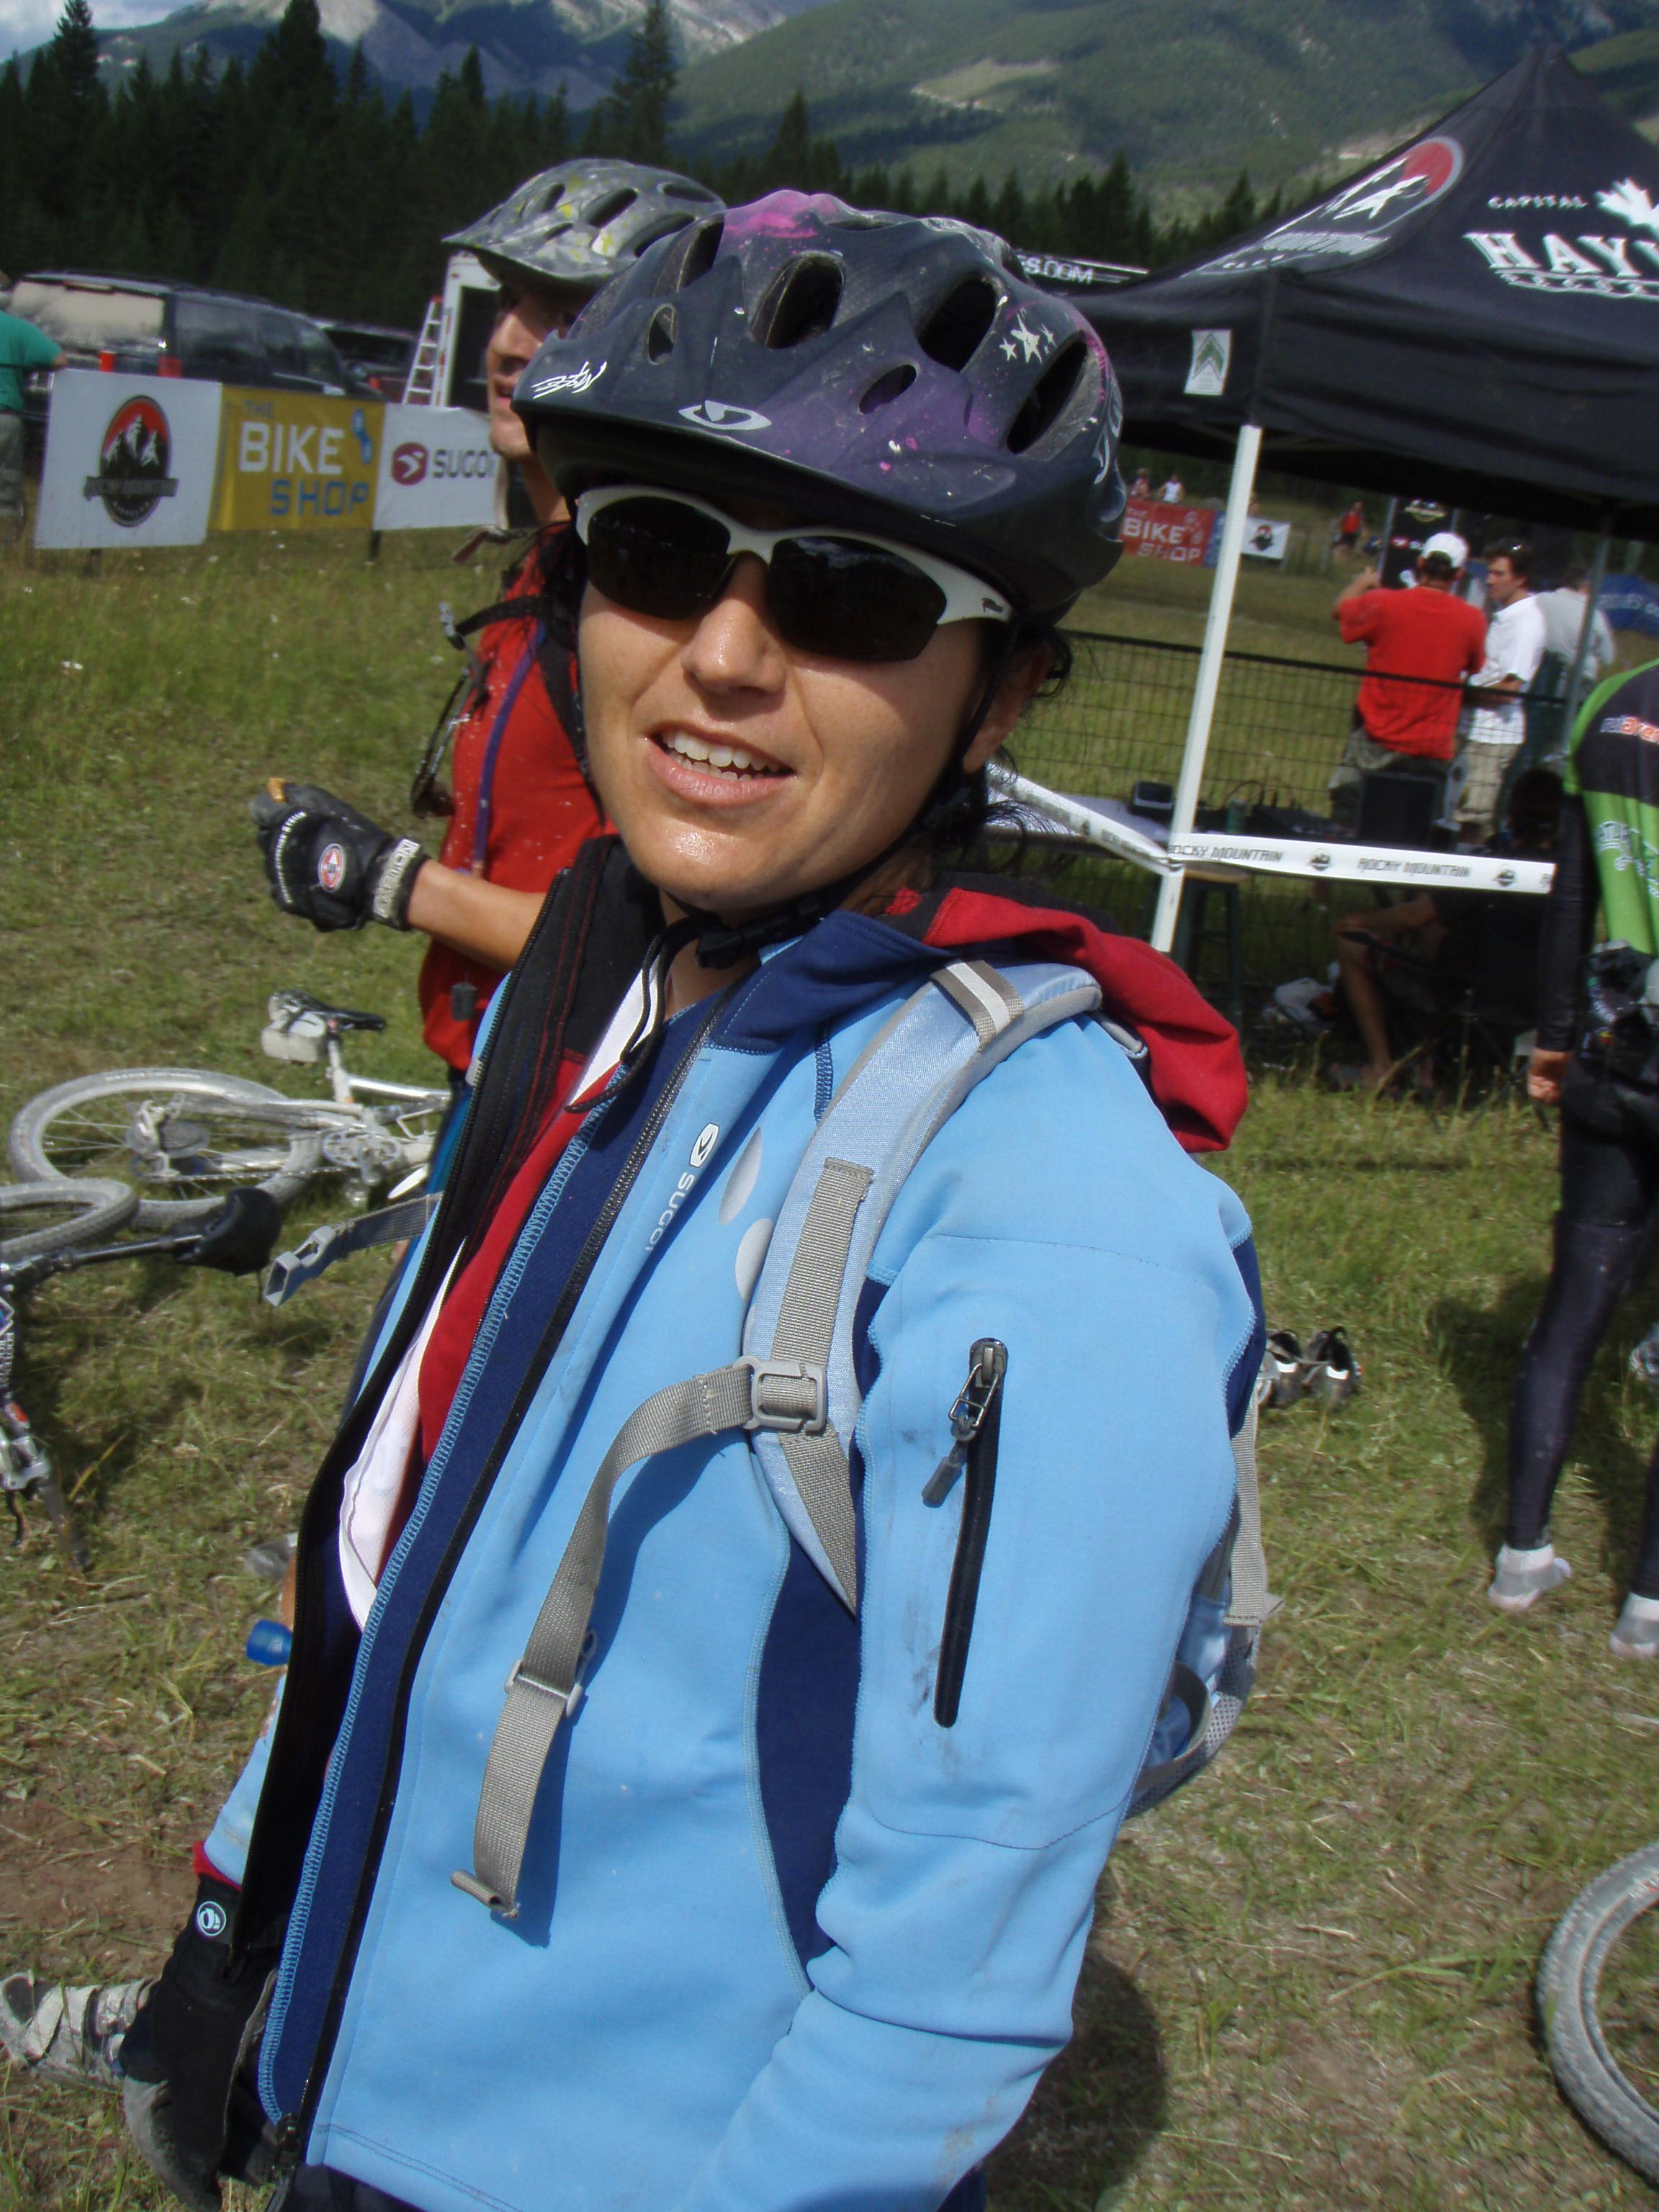 Gina on Day 4 of the Trans Rockies Challenge